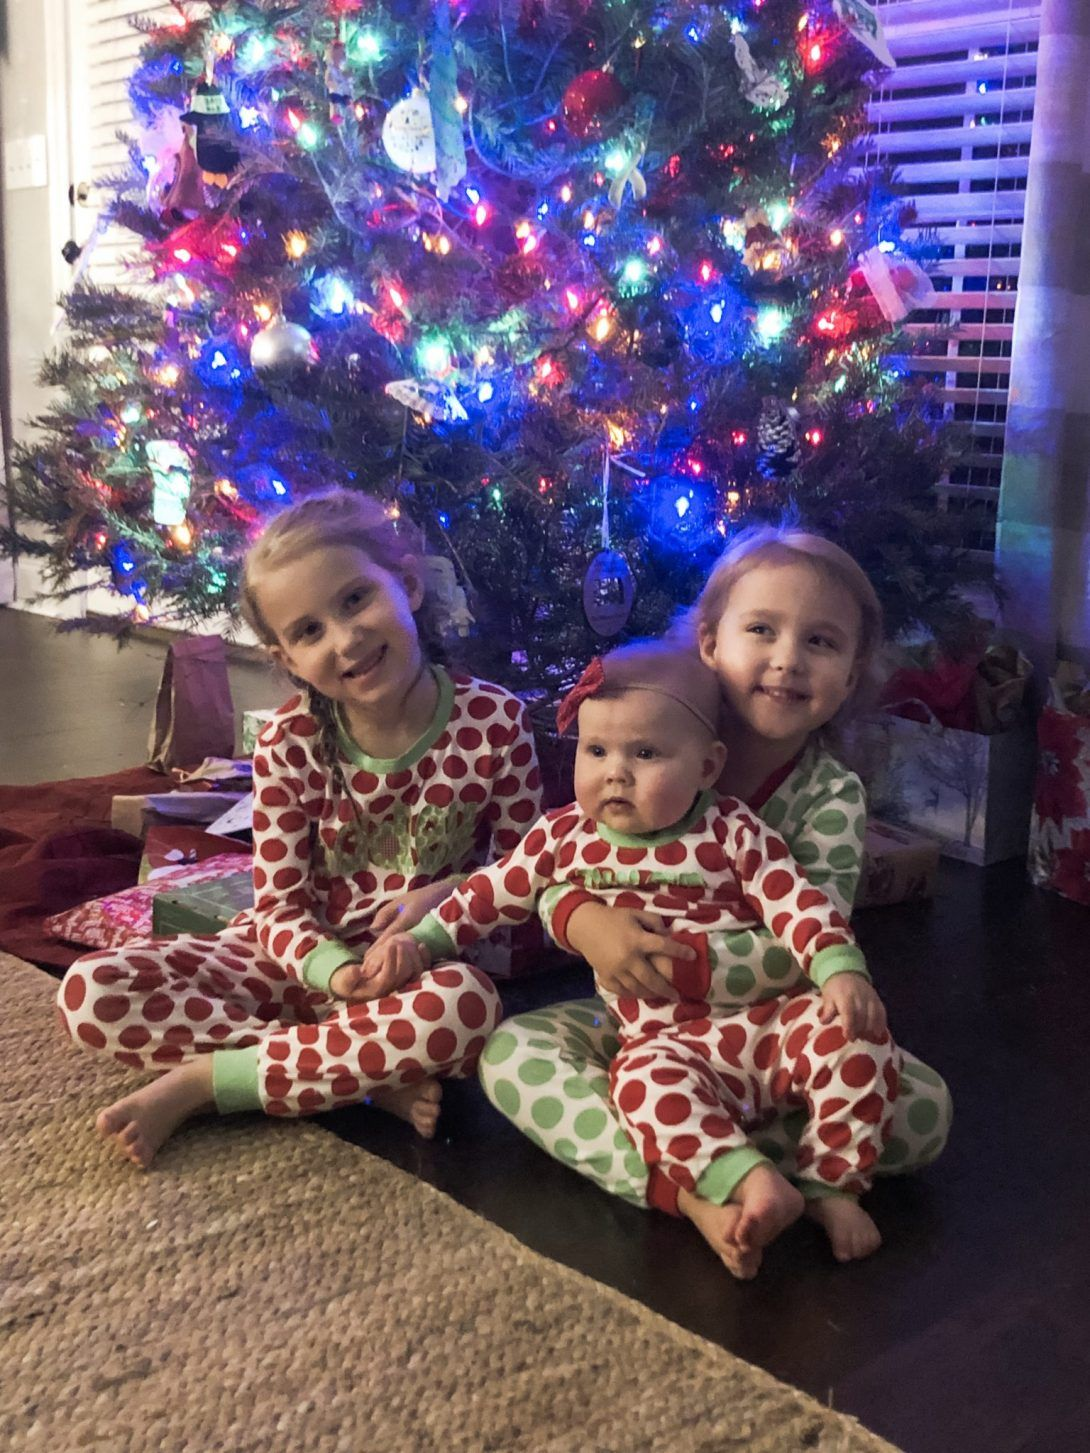 Christmas & New Years Eve Shenanigans 2019 in 2020